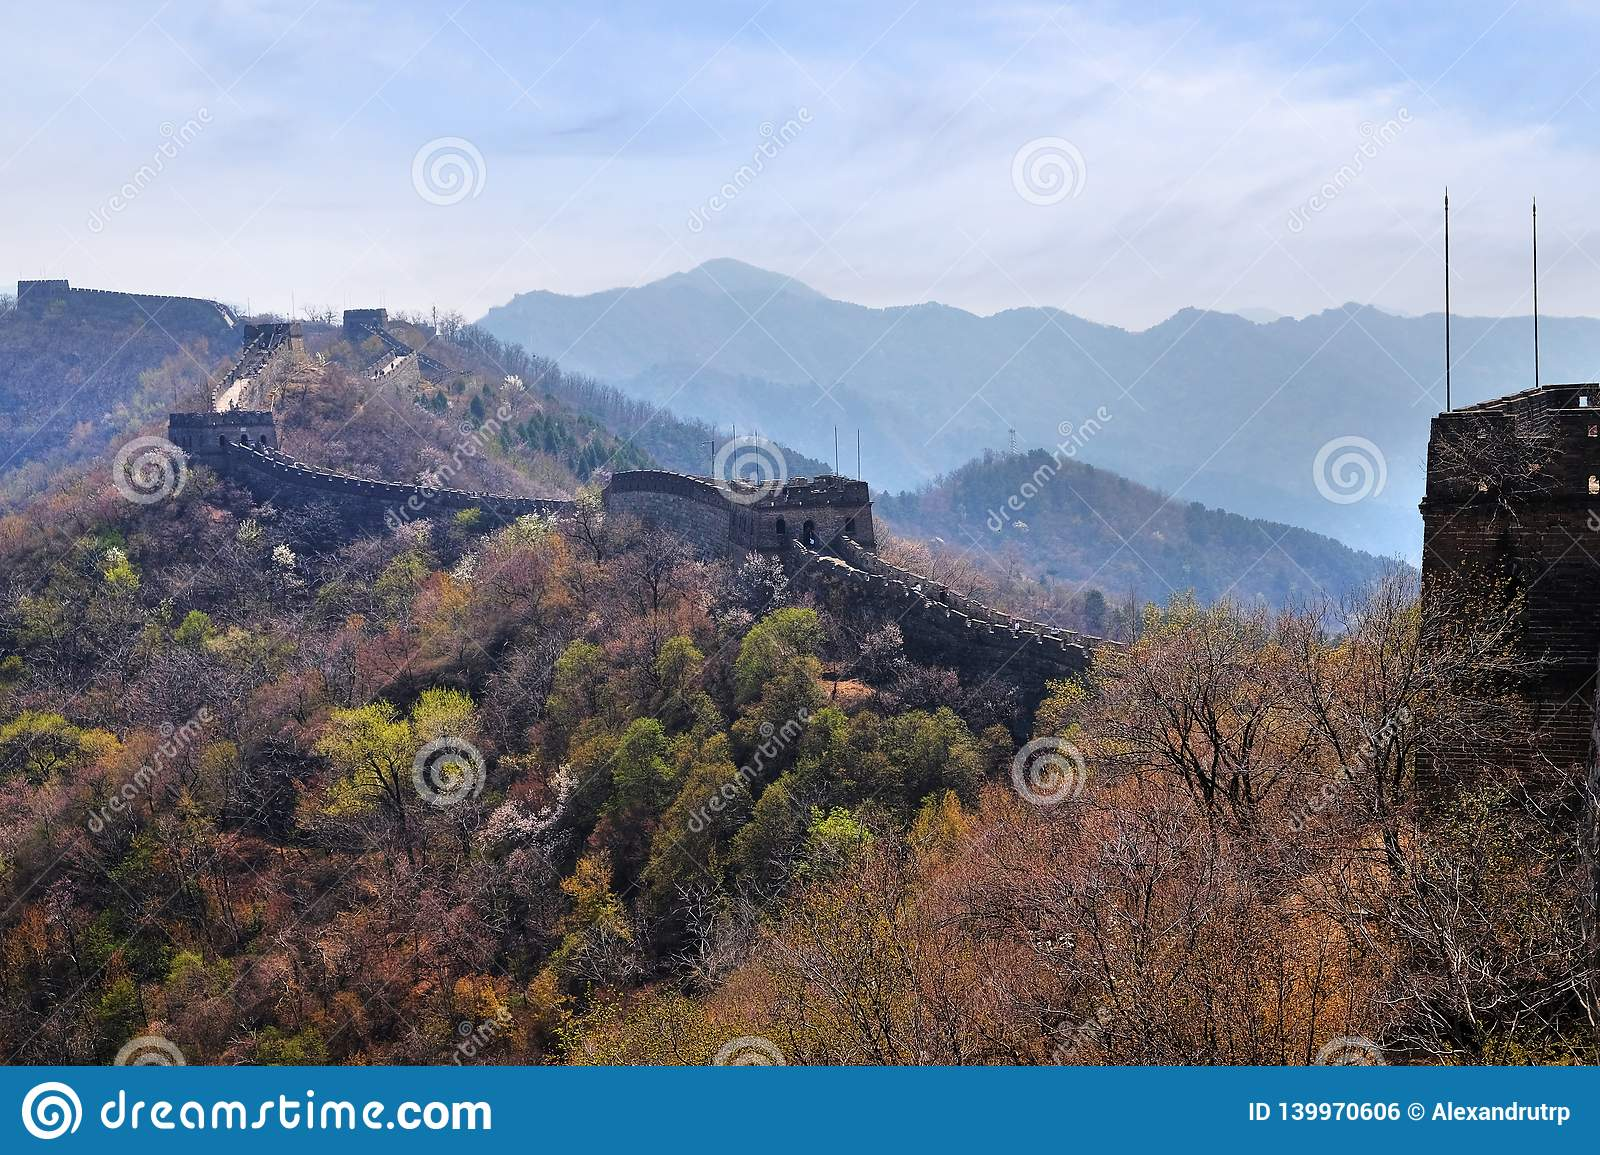 The Mutianyu section of the Great Wall of China in a sunny spring day, against a blue sky.